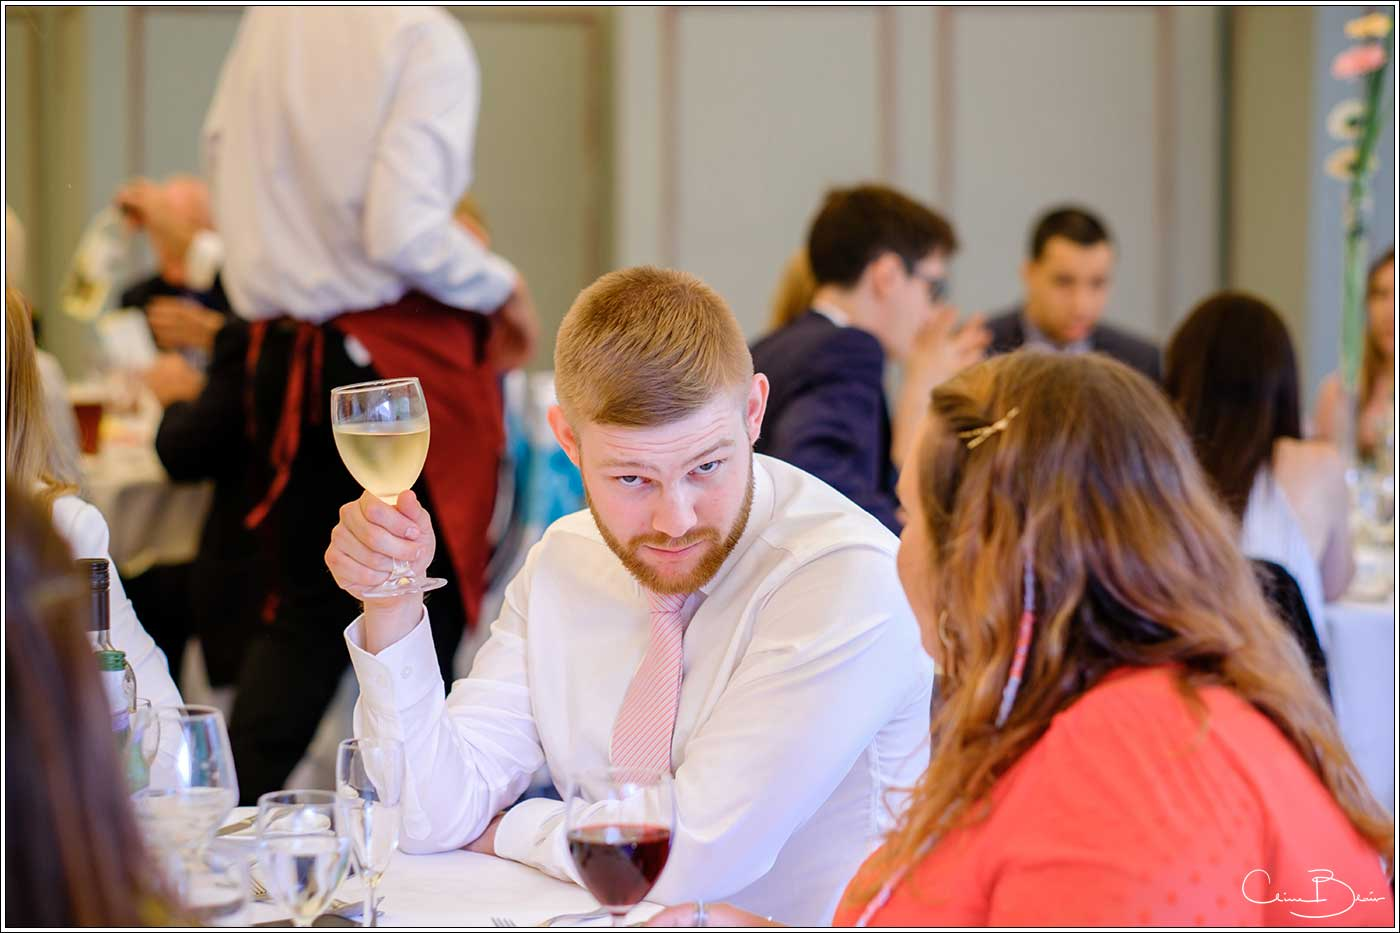 Coombe Abbey wedding photography showing man with glass of wine looking at the camera